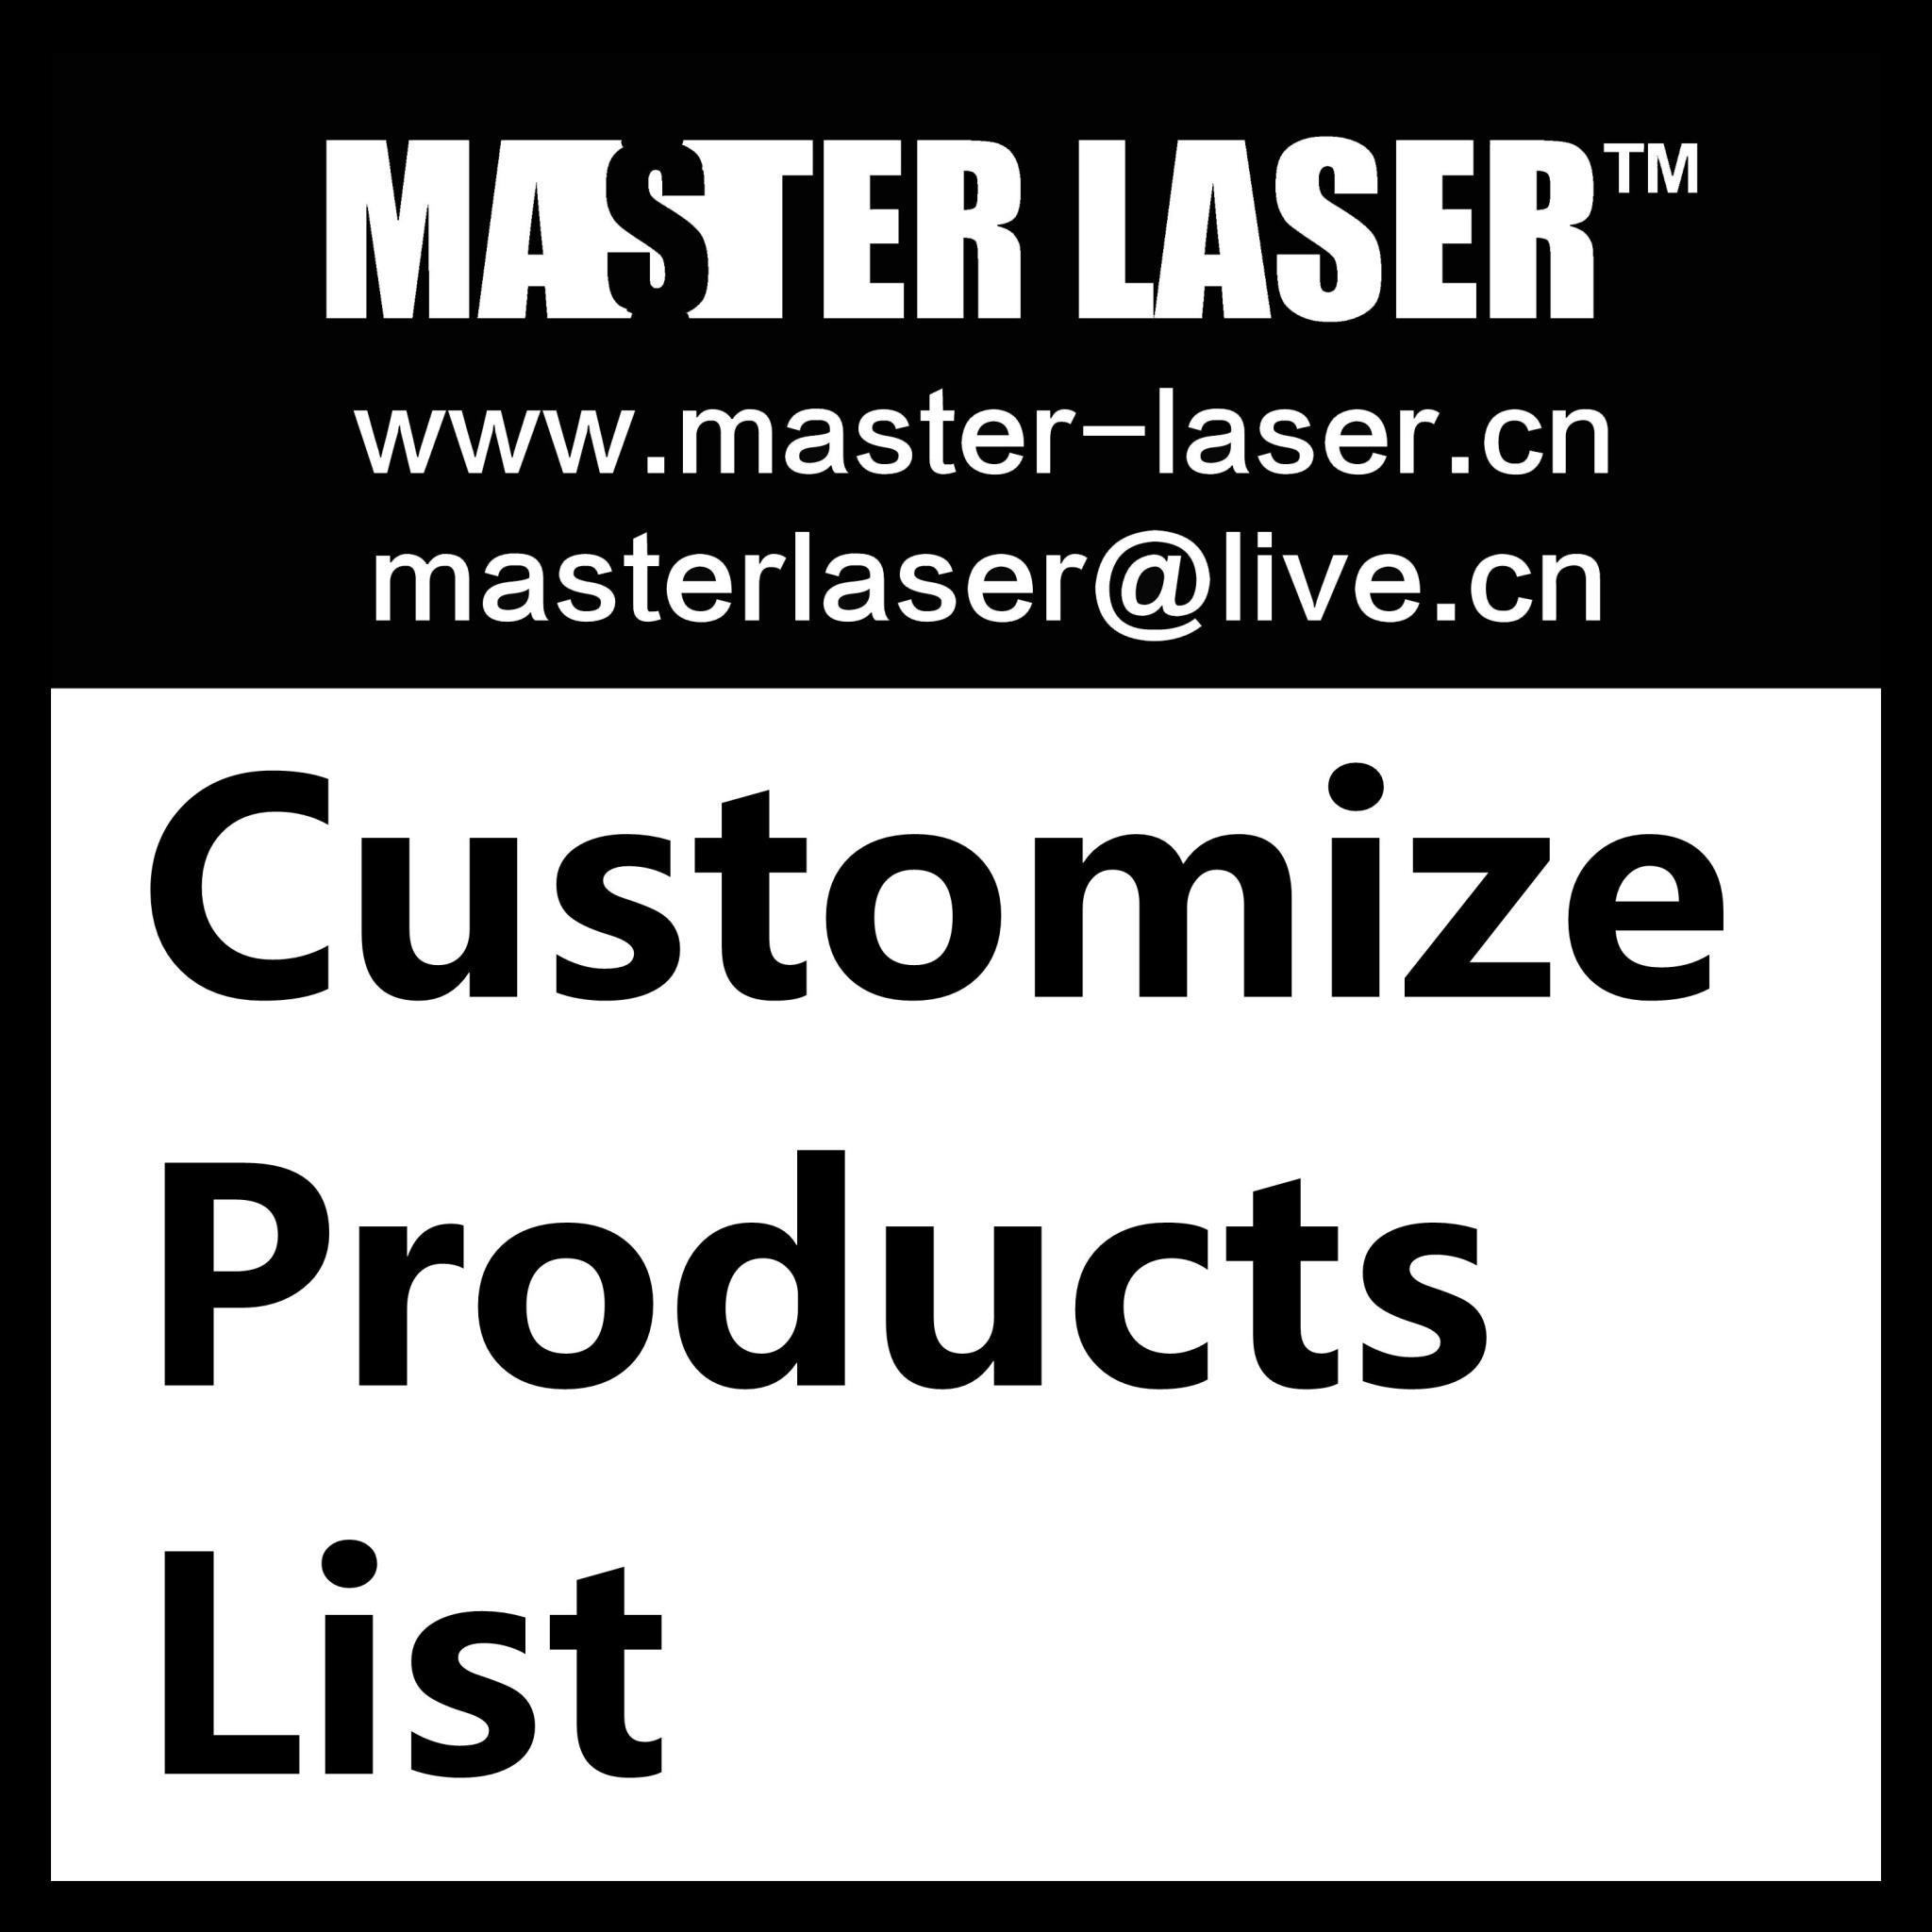 Customize Order List Master Laser CO2 Laser Cutting Machine Parts Buying Leads order list for marek